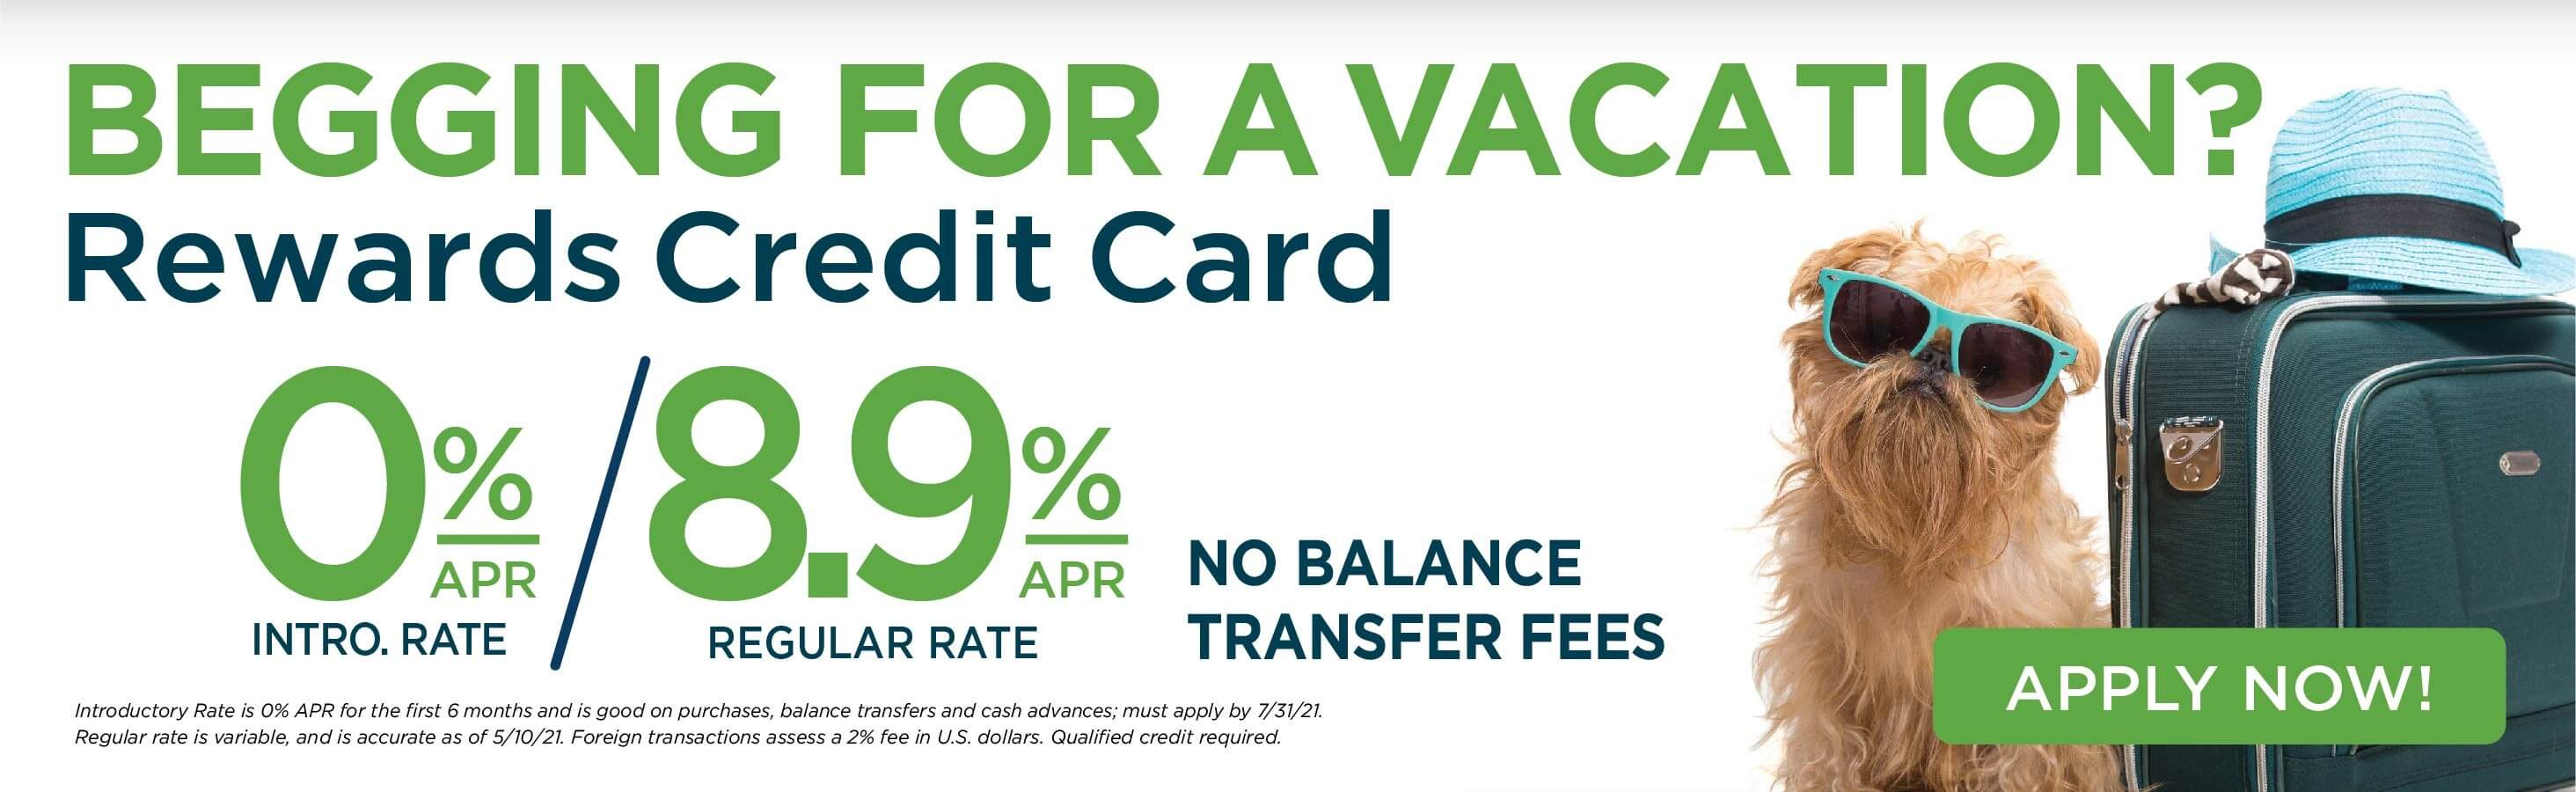 Begging for a vacation? 0% APR for 6 months on our Rewards Credit Card